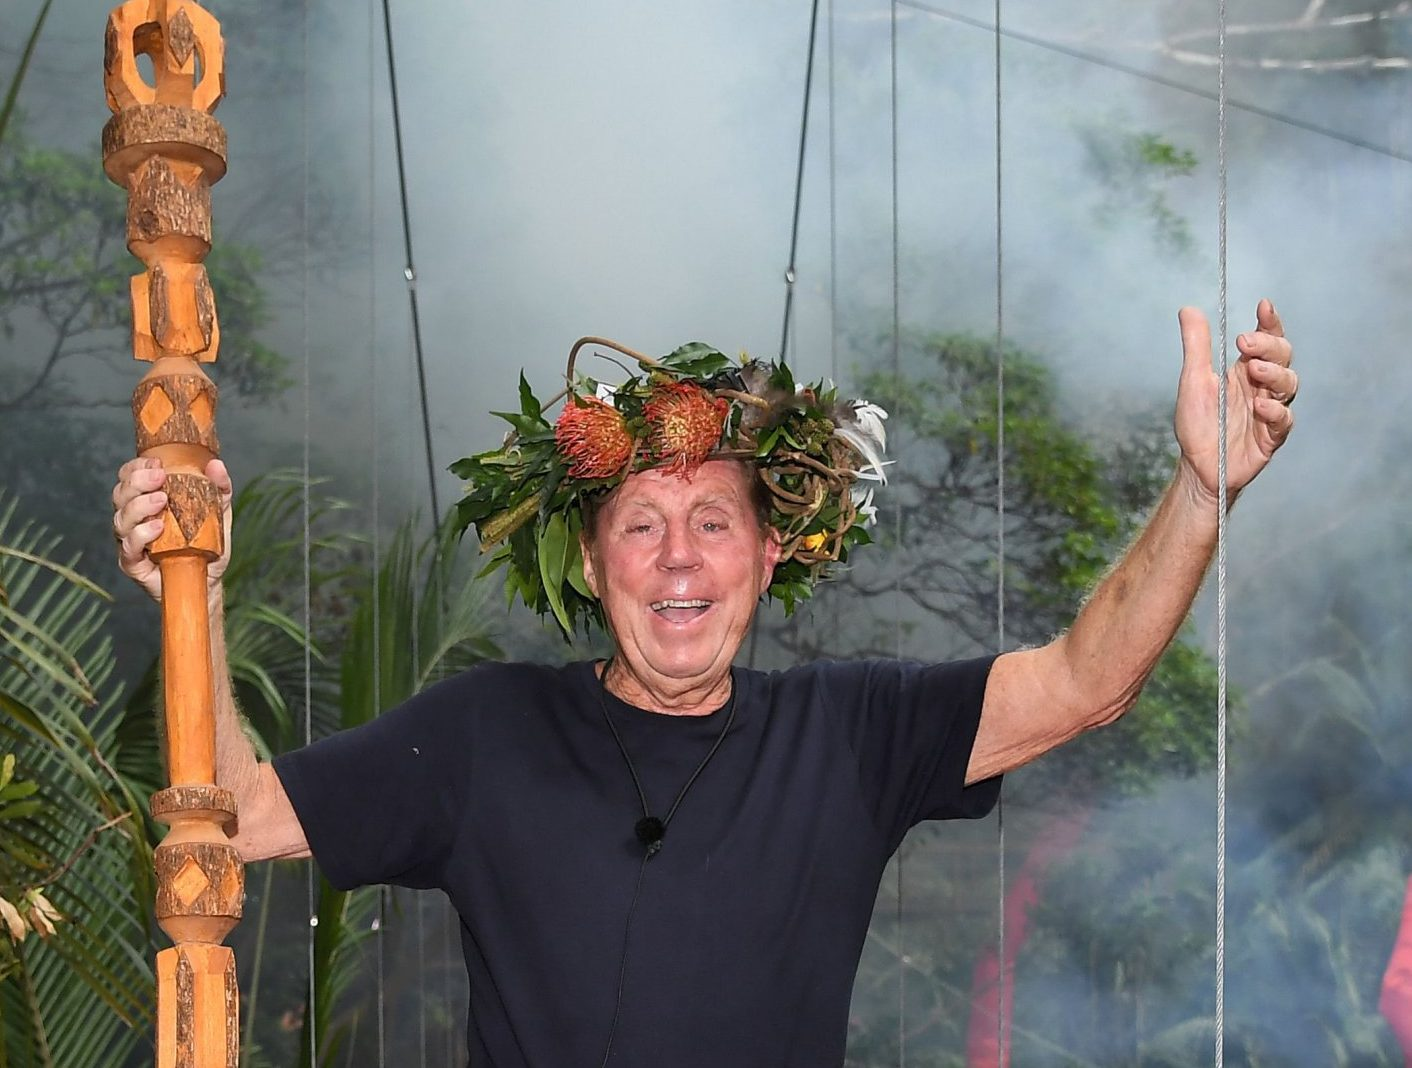 Editorial use only Mandatory Credit: Photo by James Gourley/ITV/REX (10019593d) Harry Redknapp is crowned King of the Jungle 'I'm a Celebrity... Get Me Out of Here!' TV Show, Series 18, Australia - 09 Dec 2018